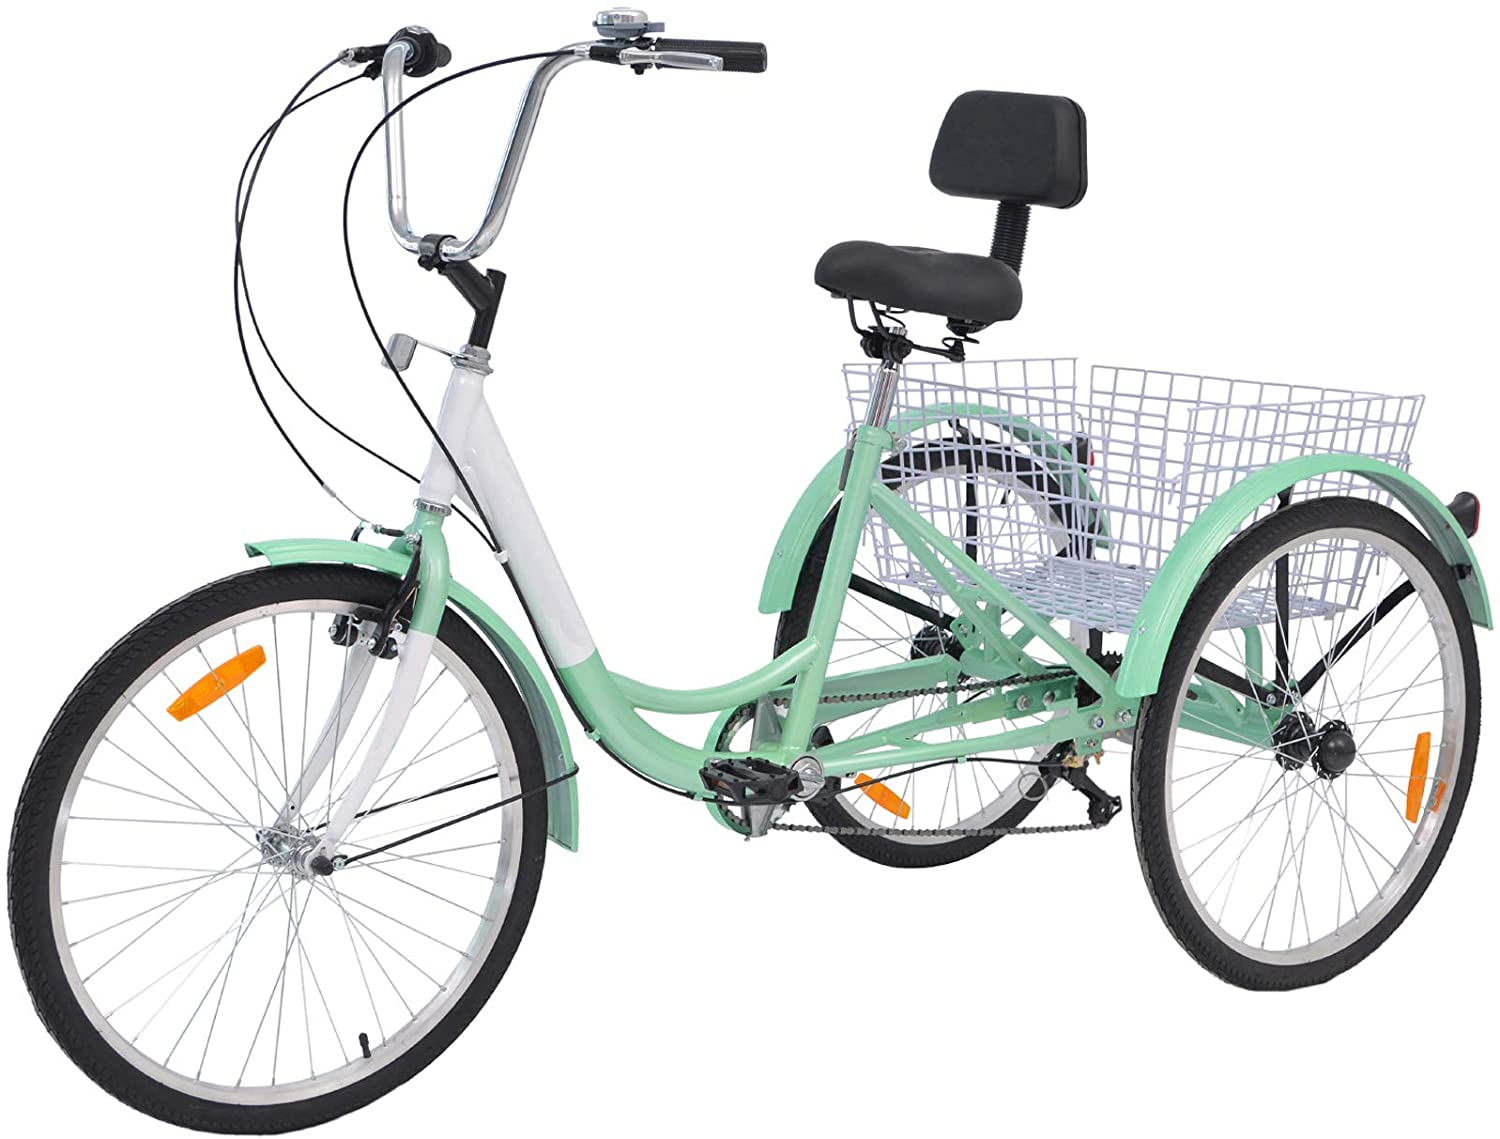 Slsy 7-speed adult tricycle in mint green